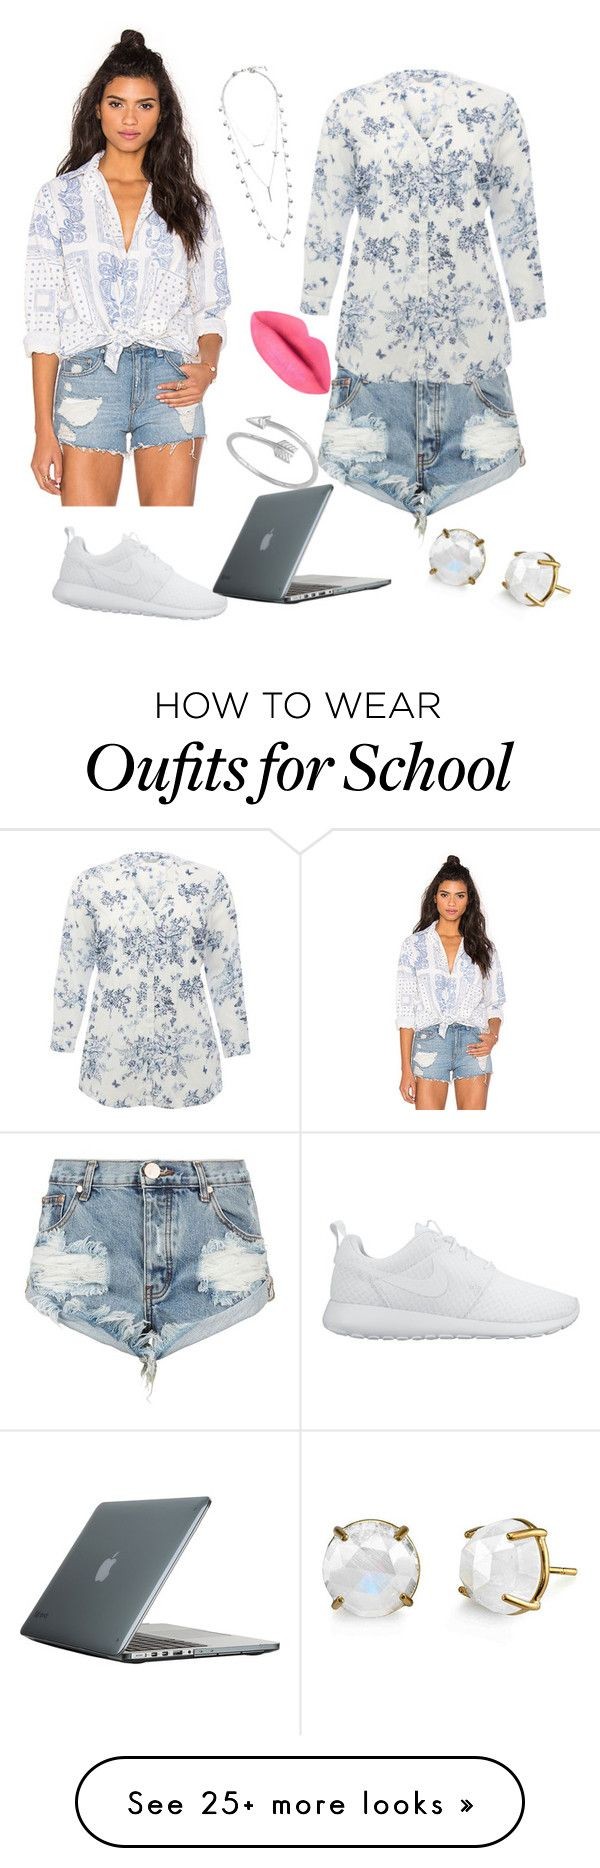 """School "" by nikola-sperlikova on Polyvore featuring Current/Elliott, One Teaspoon, M&Co, NIKE, Lucky Brand and Speck"